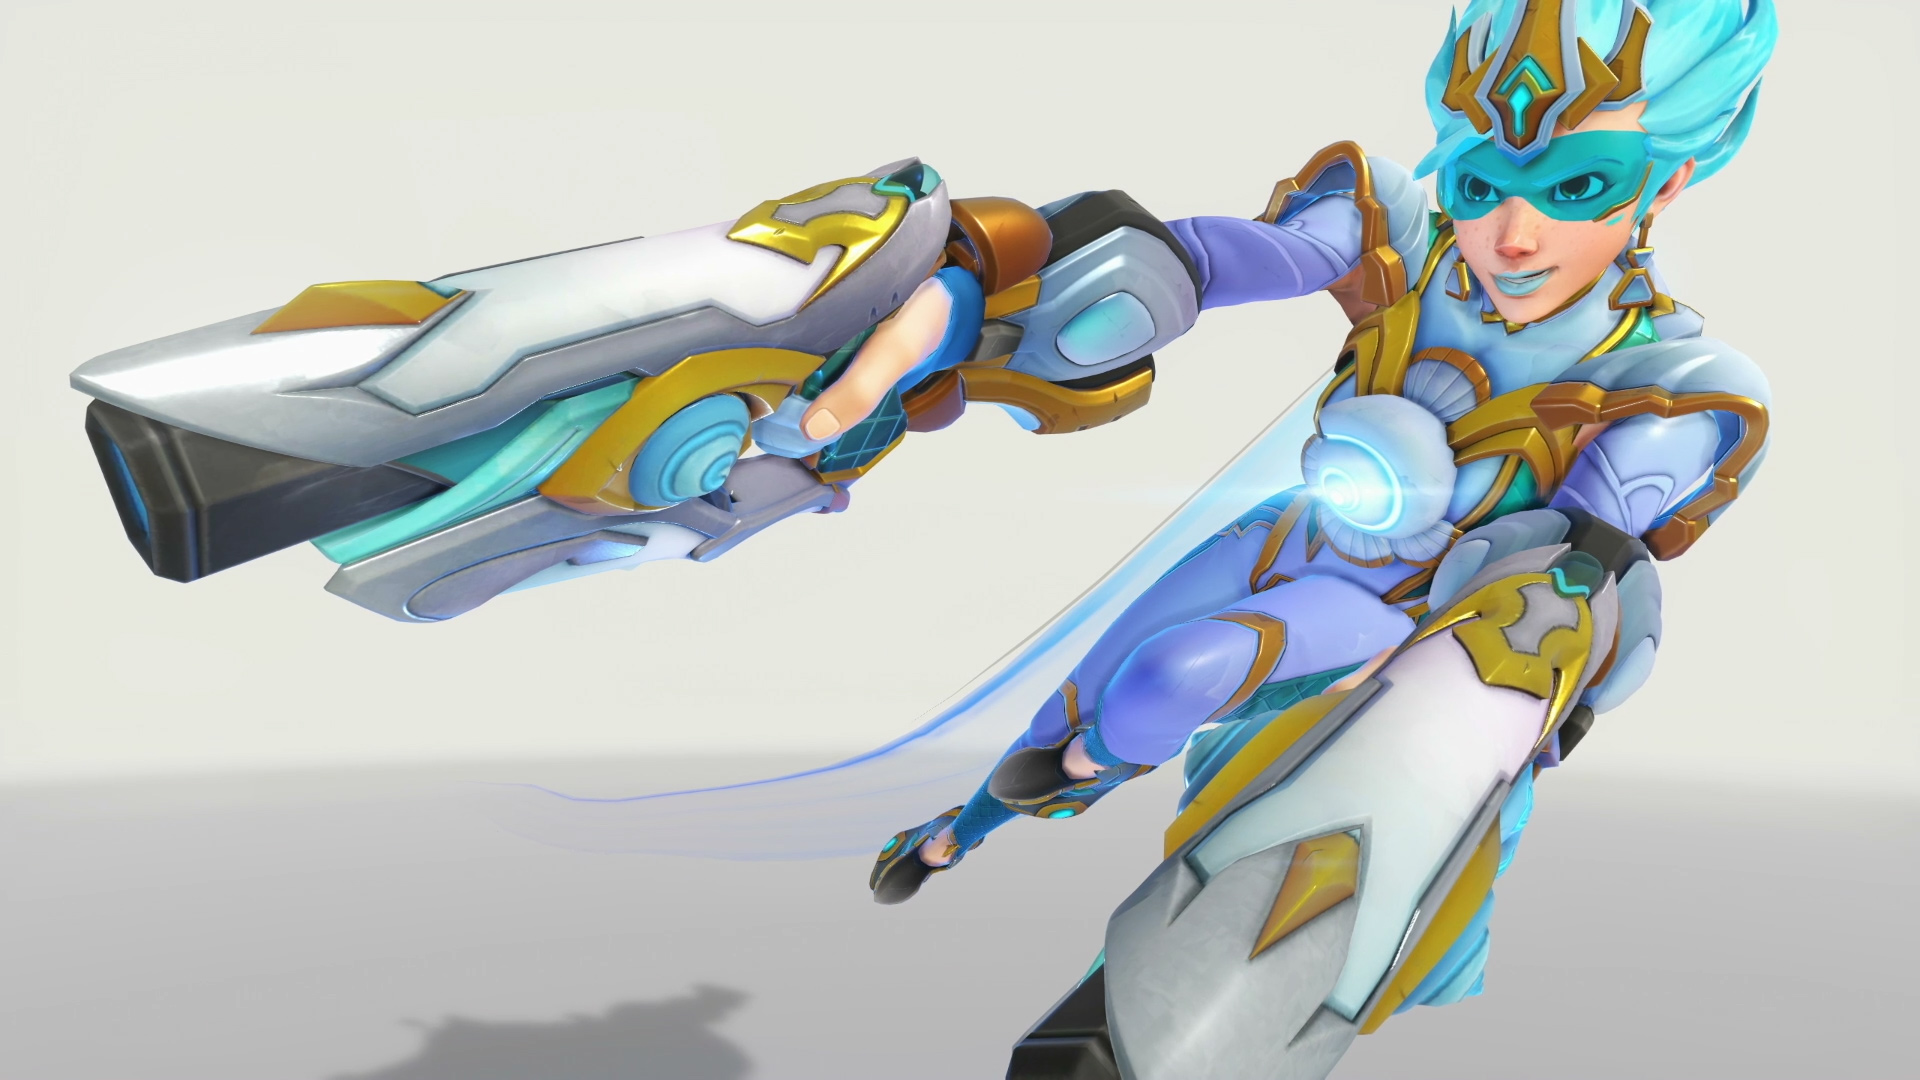 Overwatch has a pair of pricey new skins for All-Star Weekend